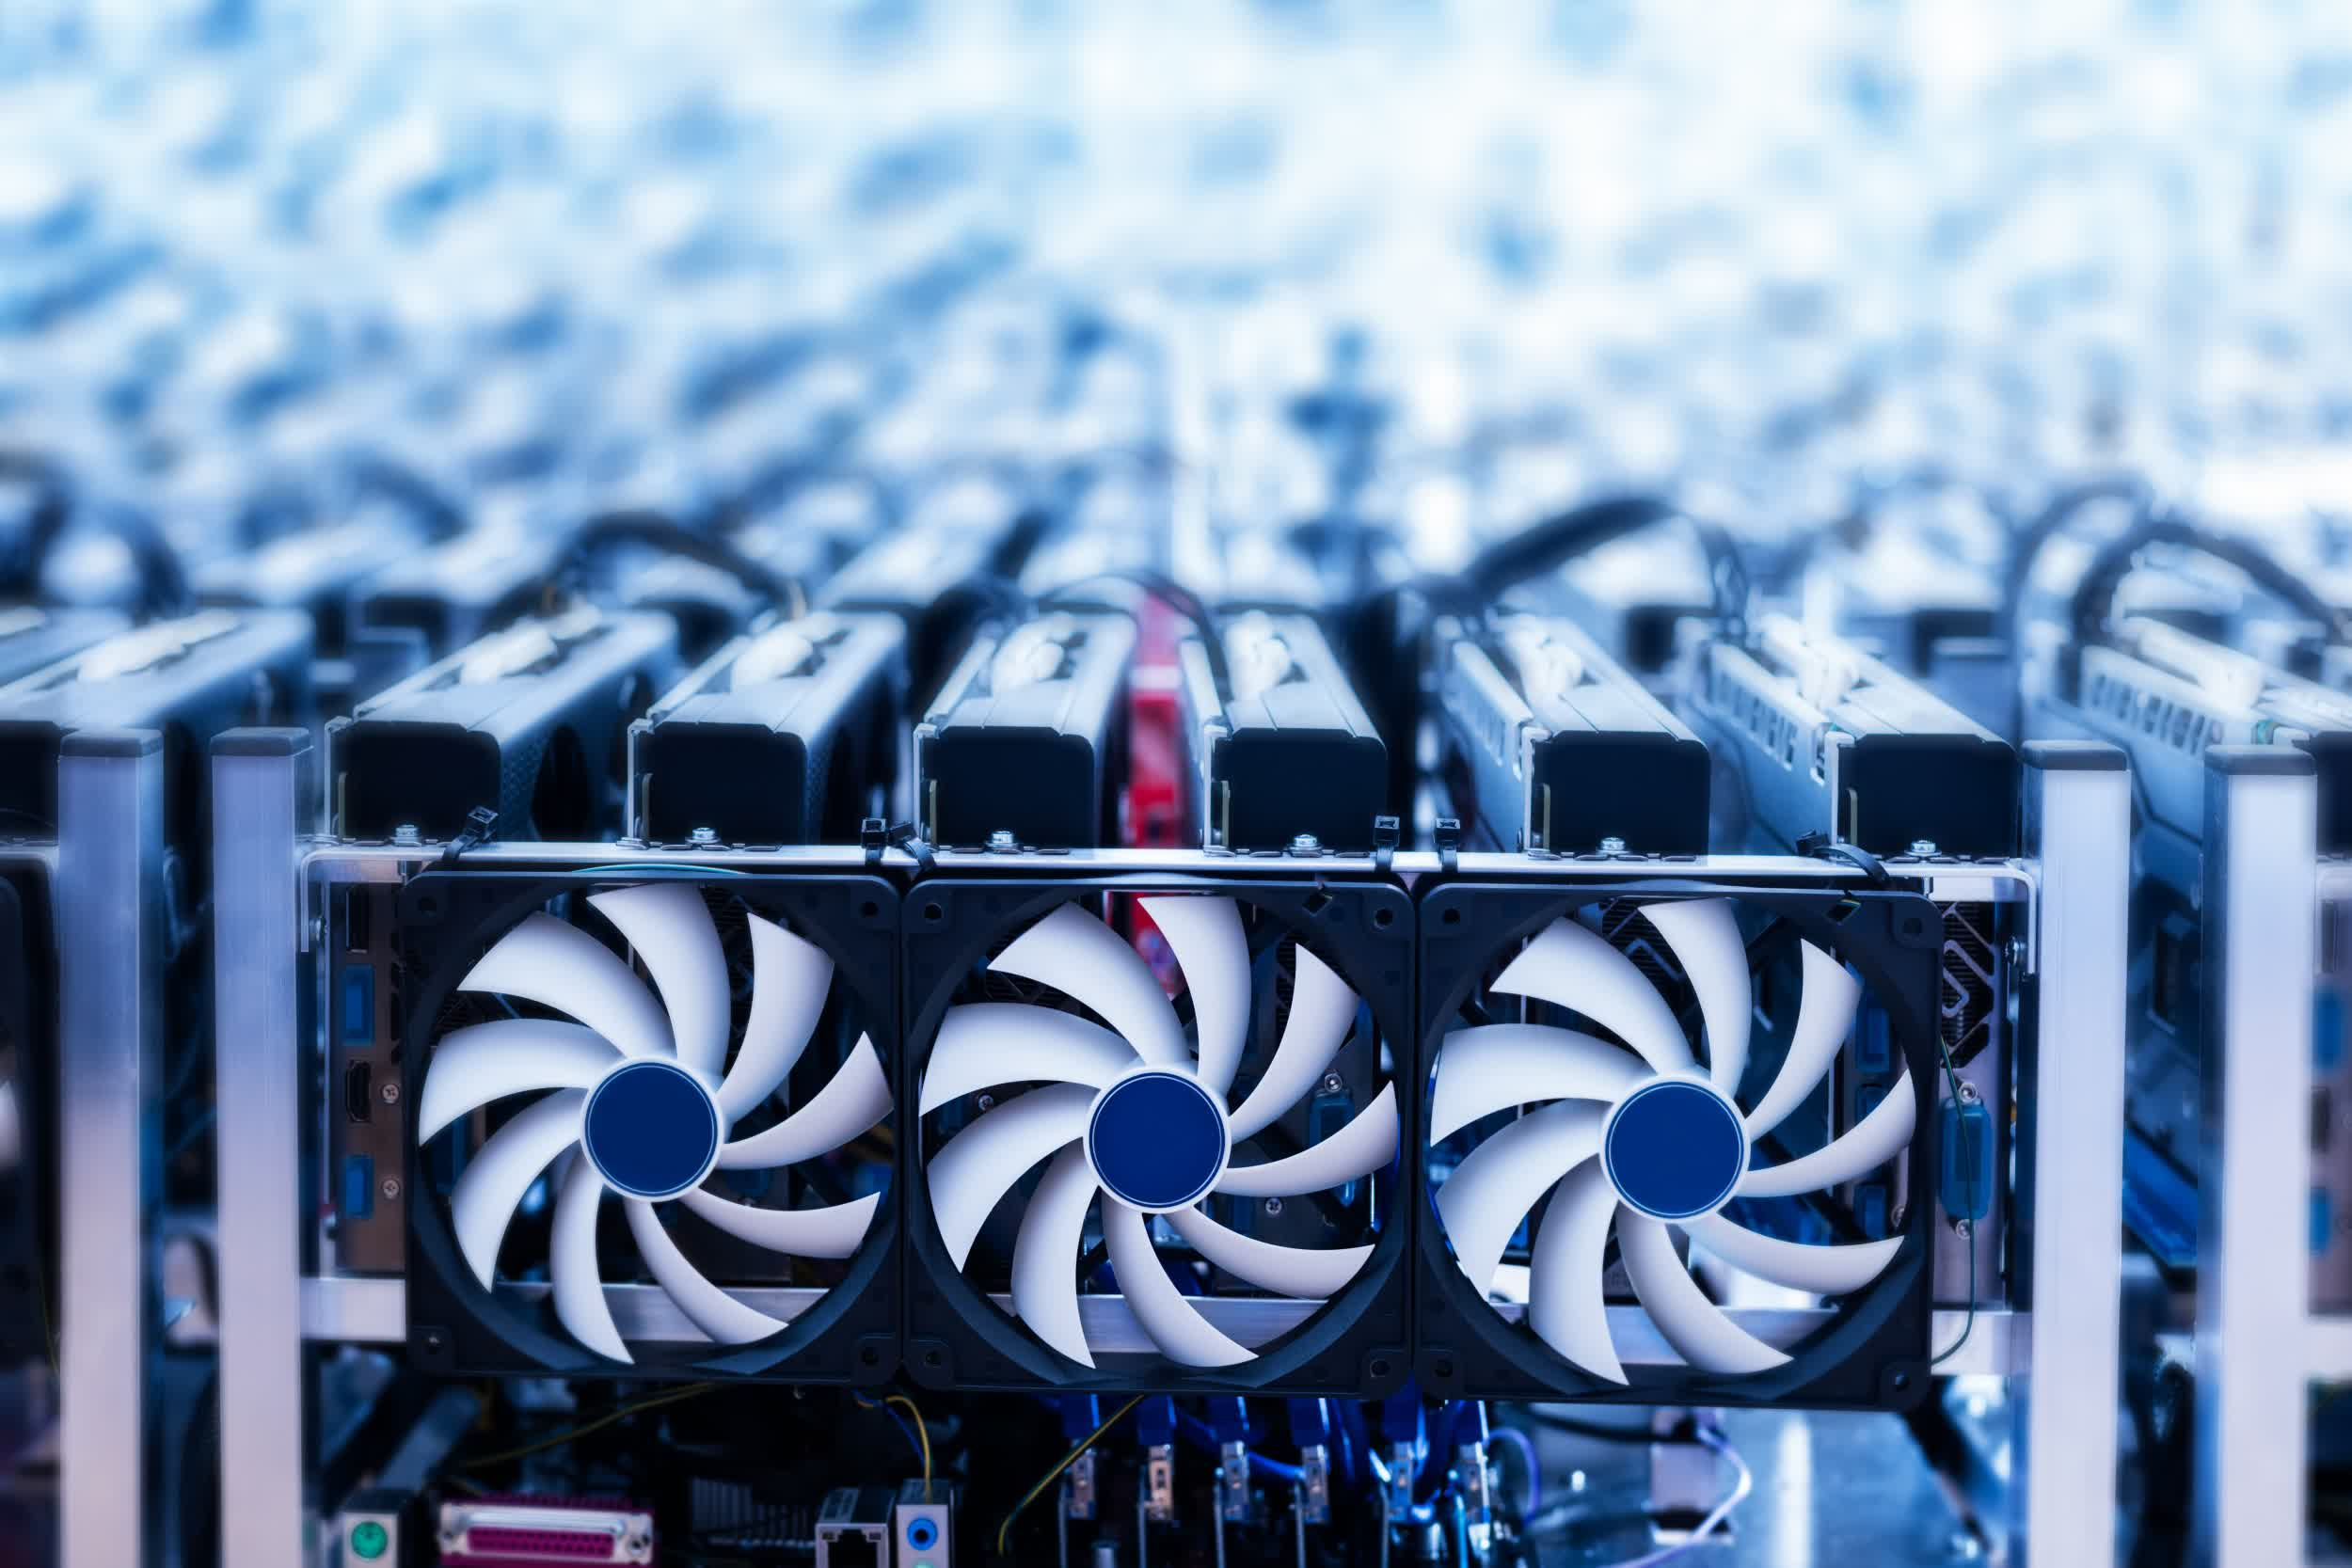 Leading Bitcoin miners are looking to address environmental concerns